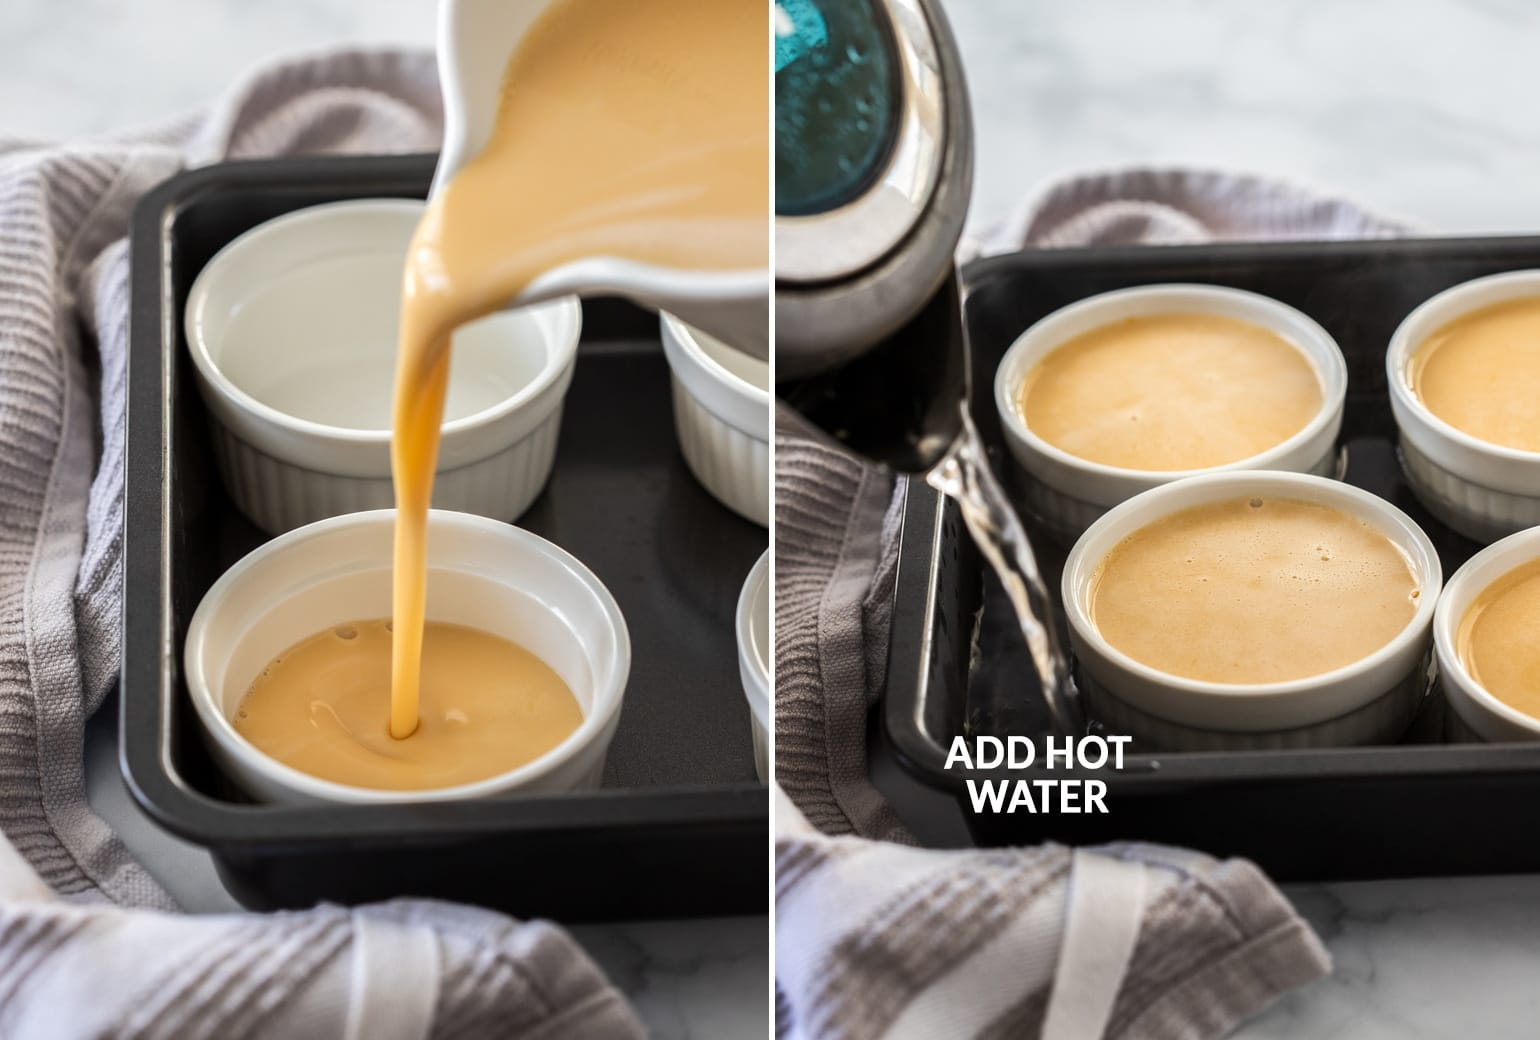 Caramel custard being poured into small white ramekins